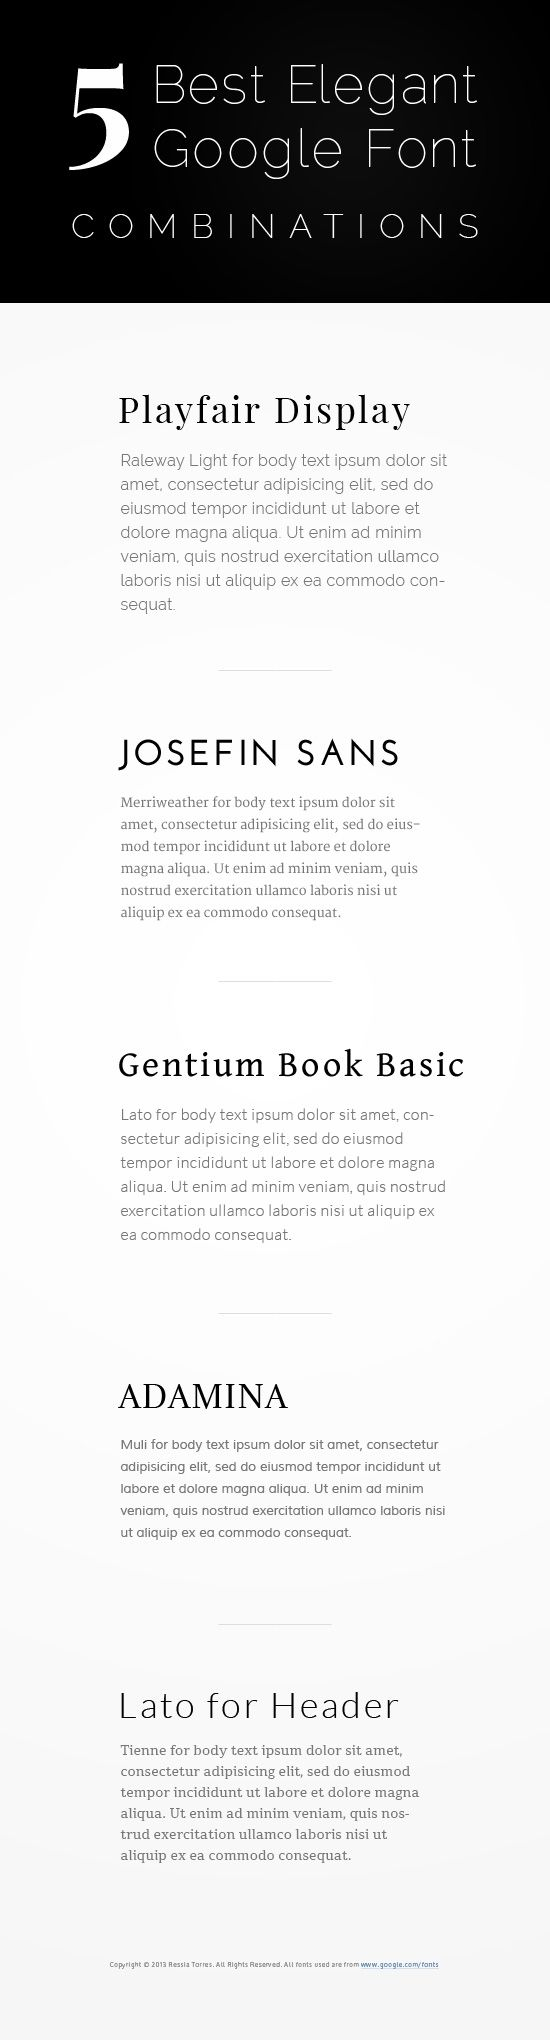 5 Best Google Font Combinations more on http://html5themes.org